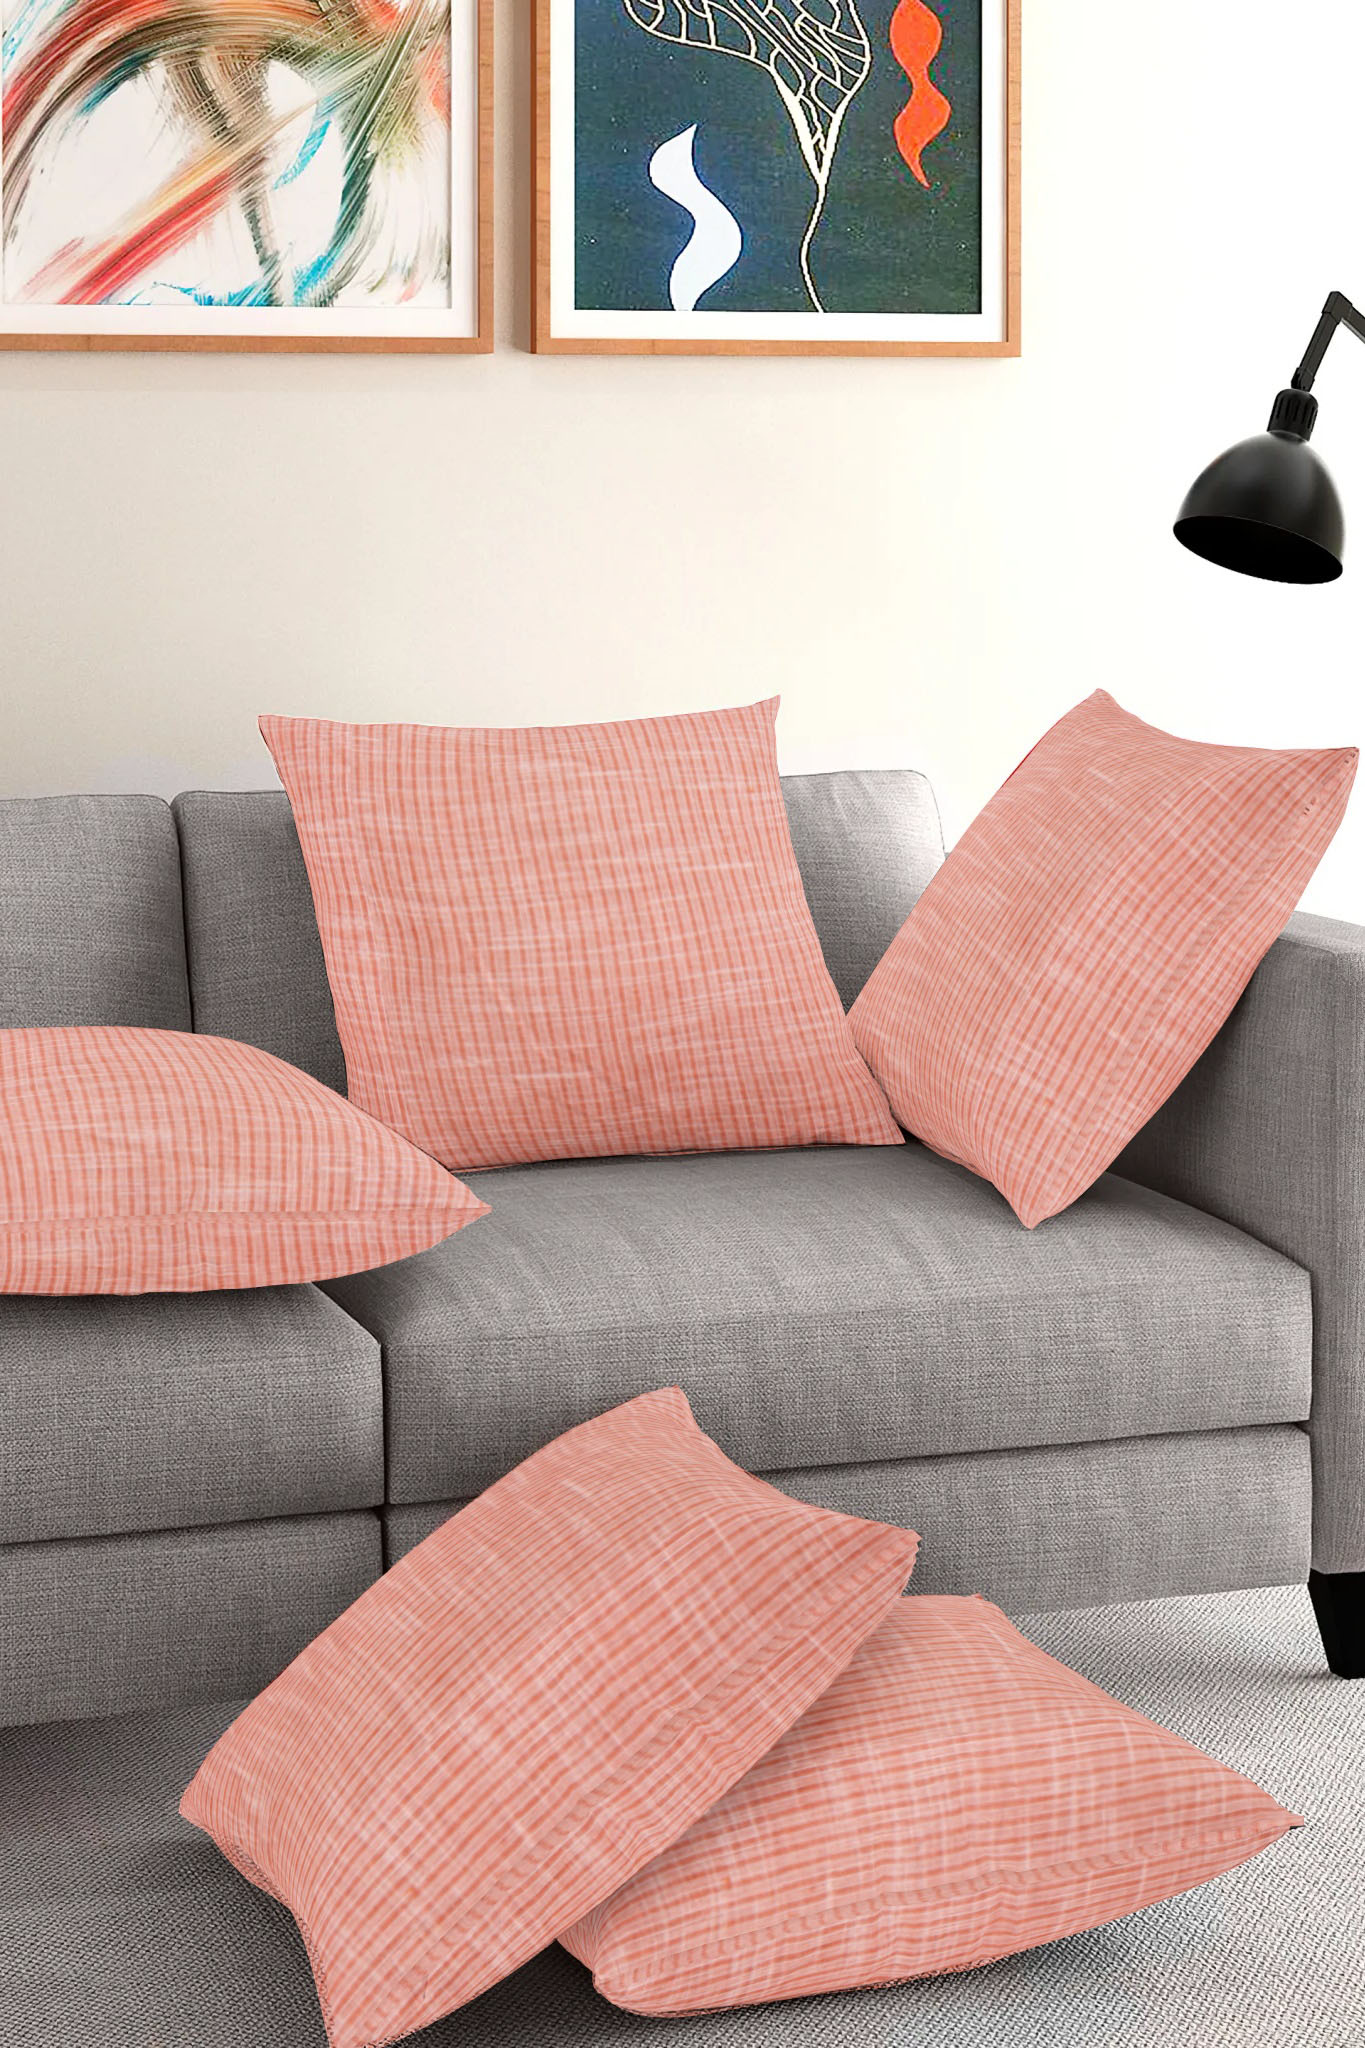 Set of 5-Peach White Cotton Cushion Cover-35375-16x16 Inches